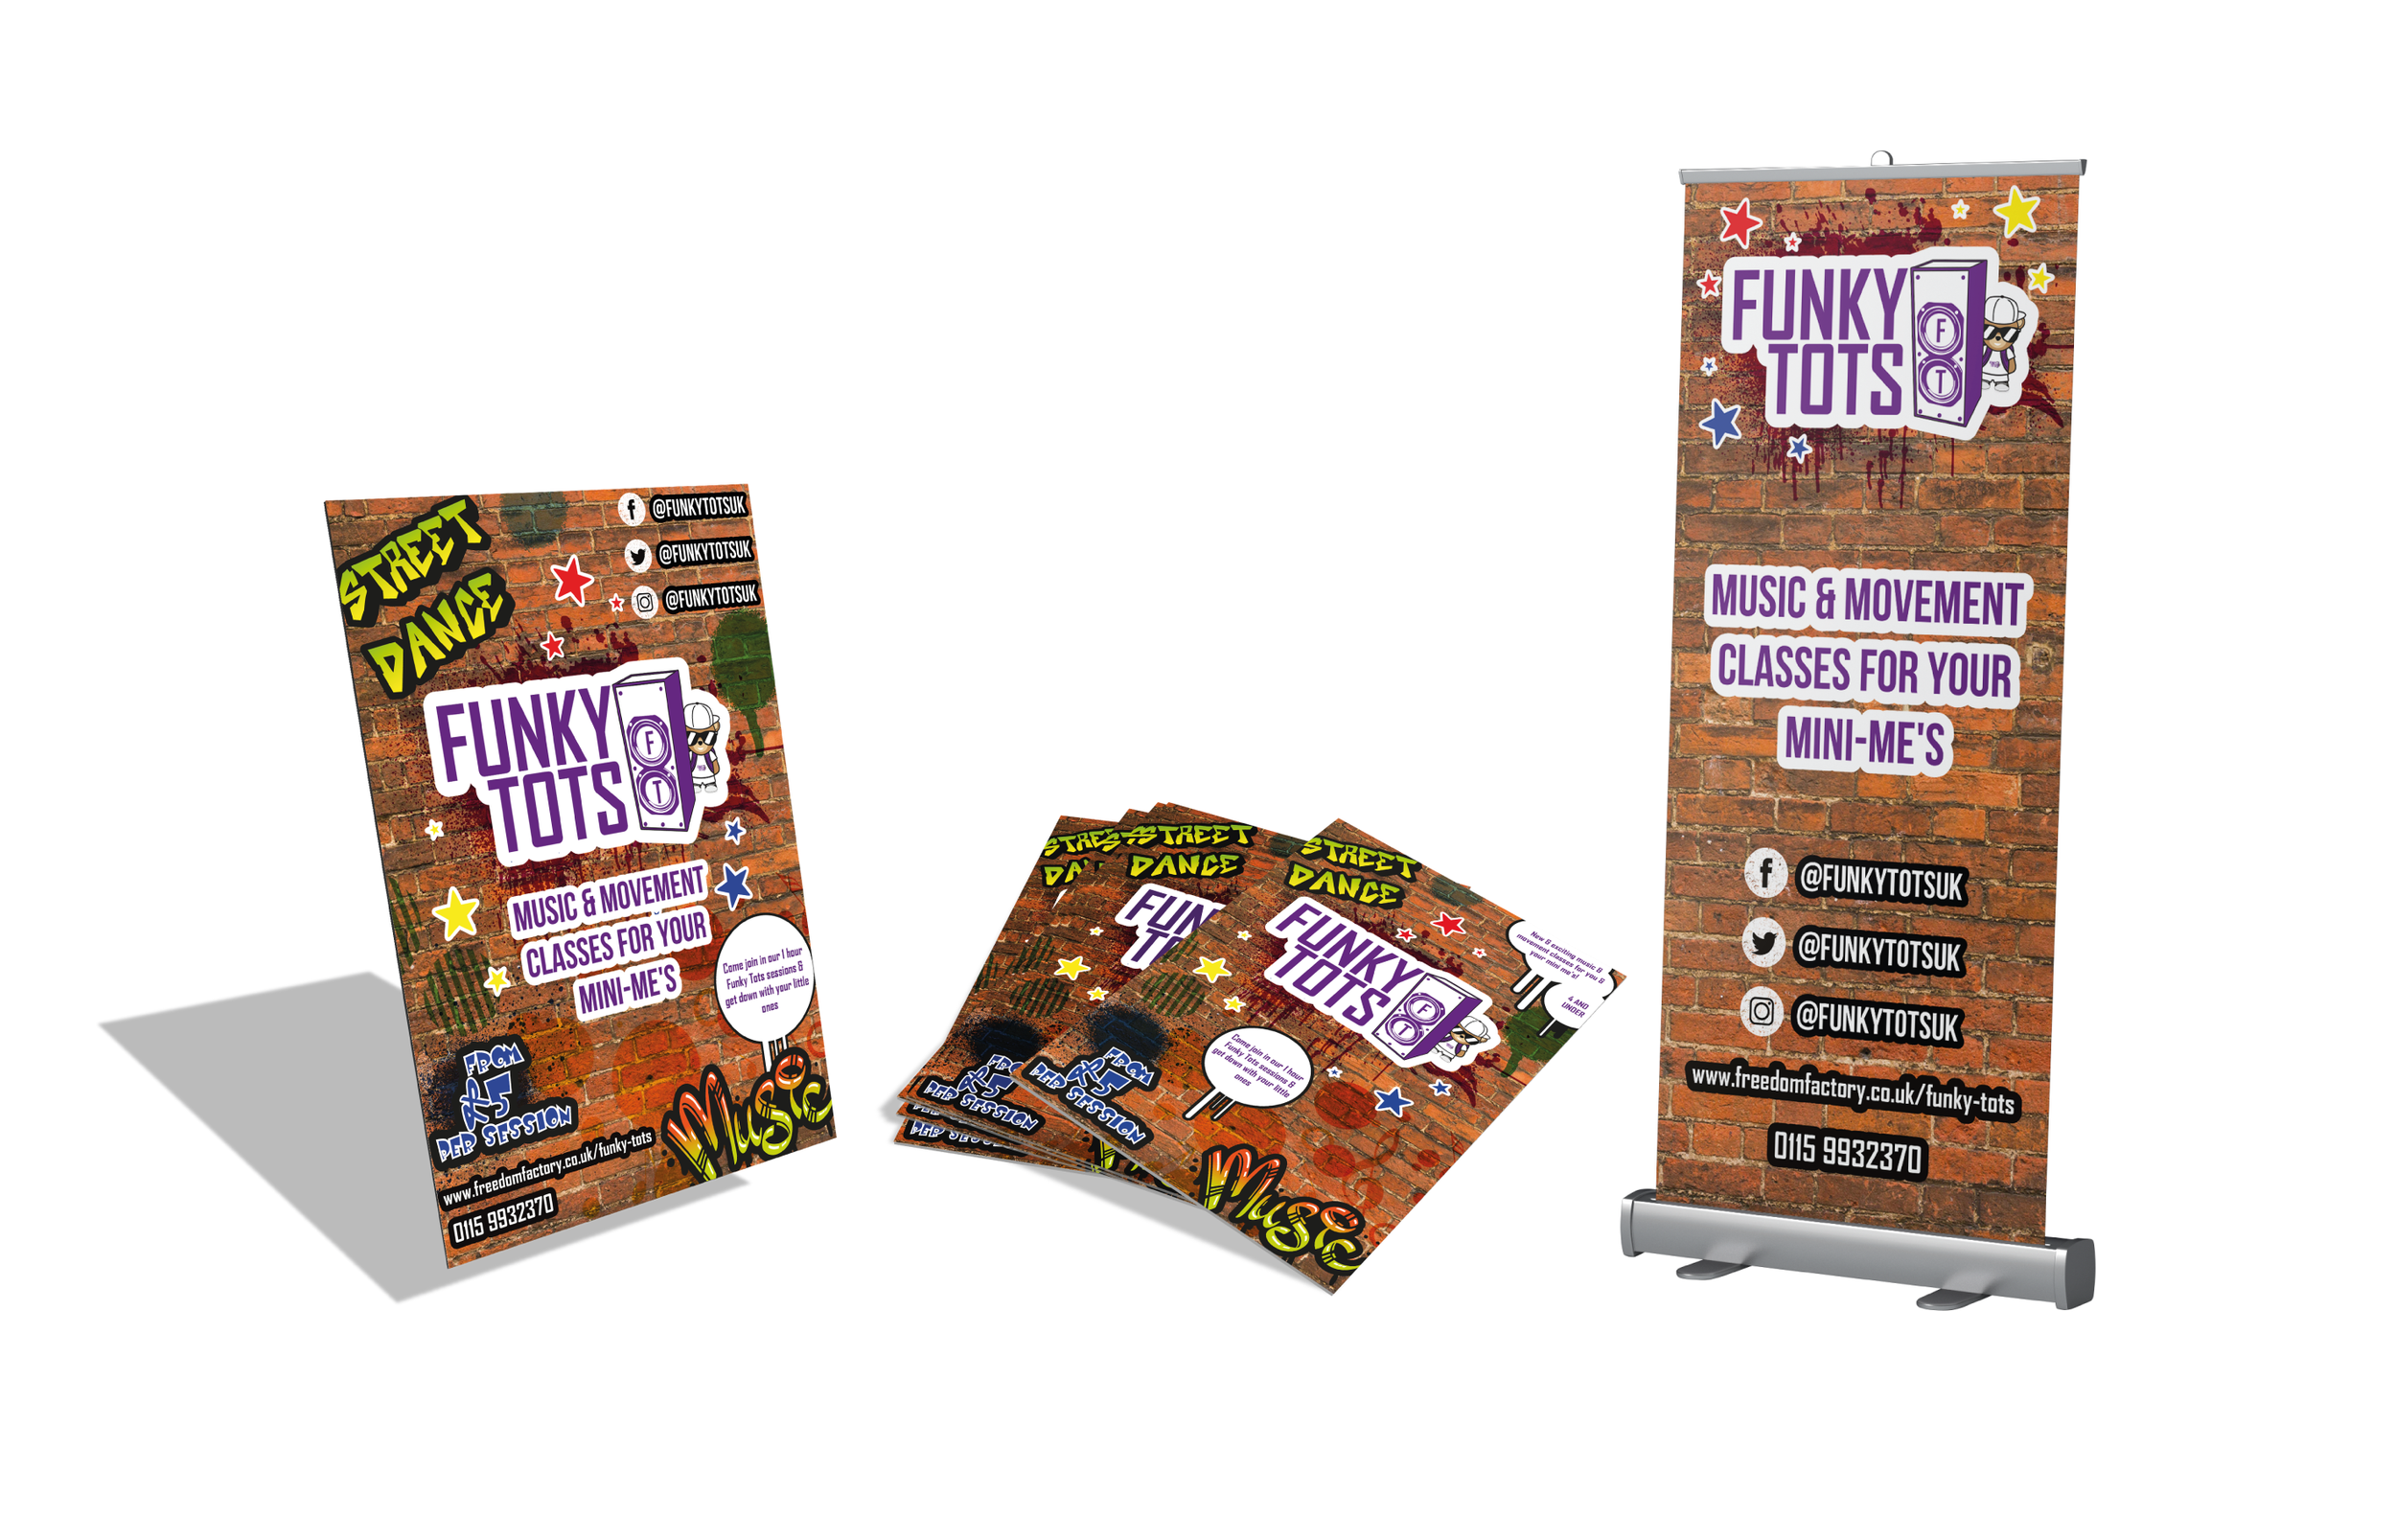 Funky Tots Design and Printed Marketing Material